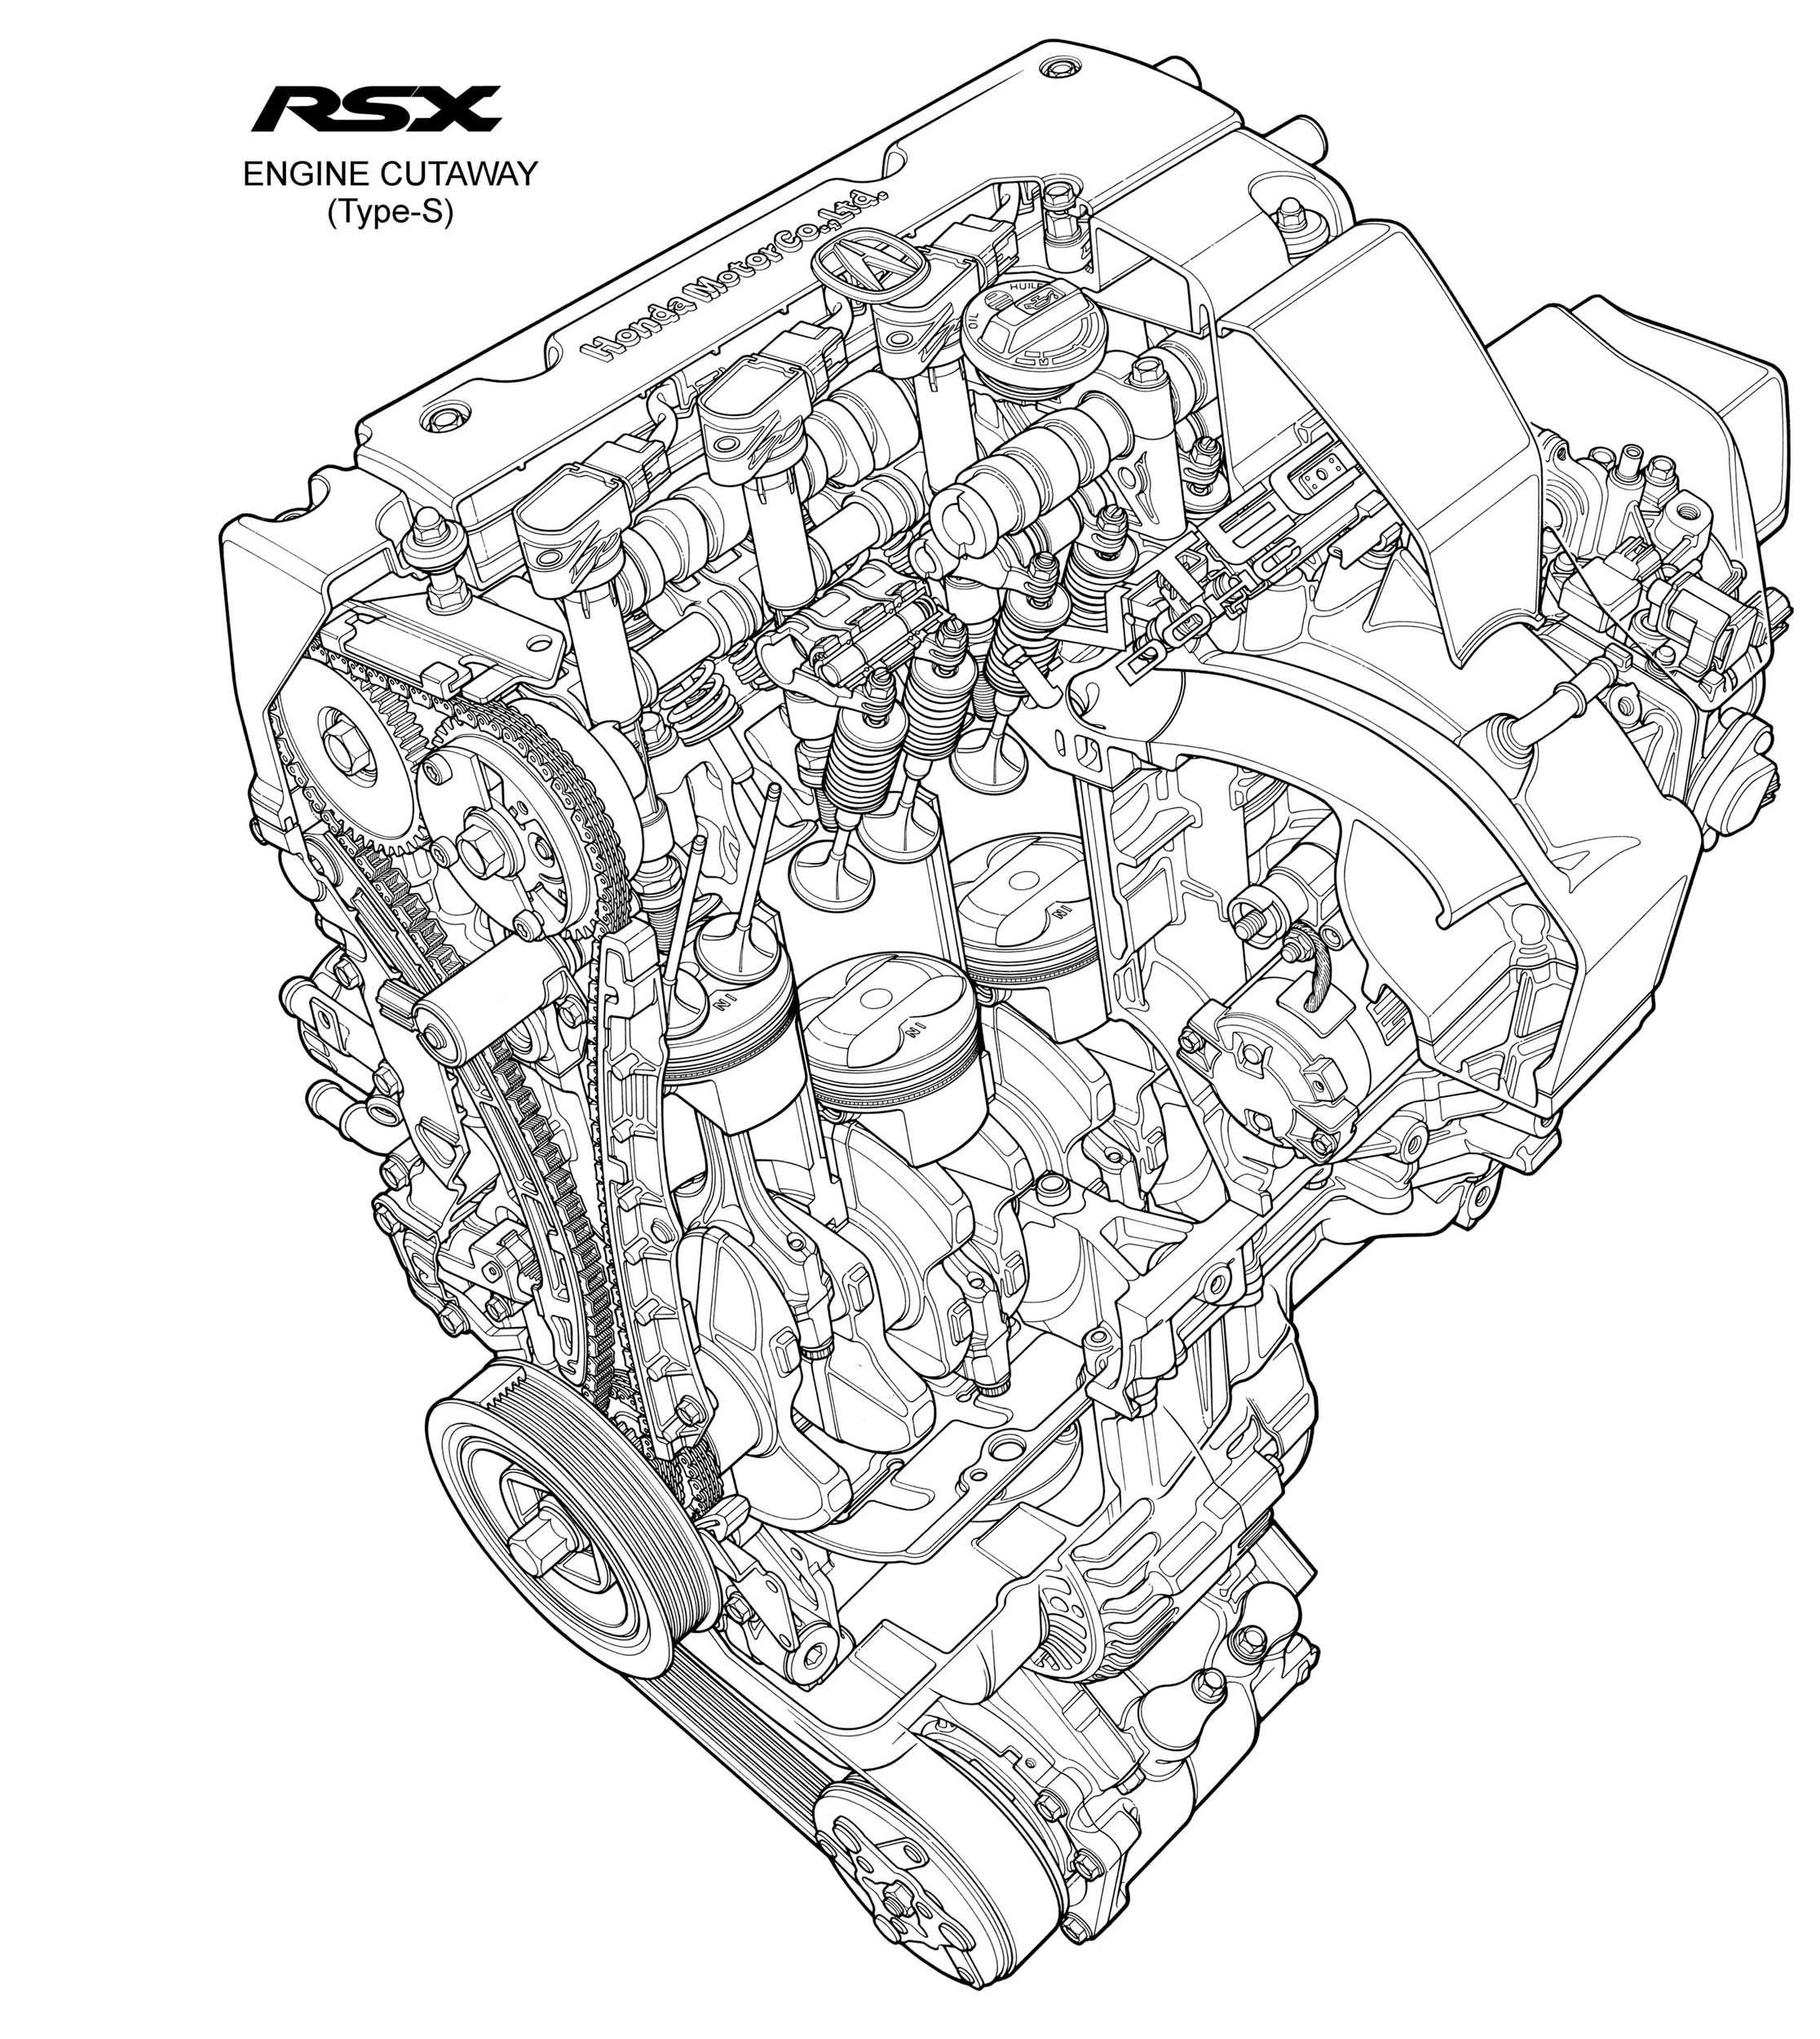 Honda Engine Cutaway Wallpapers